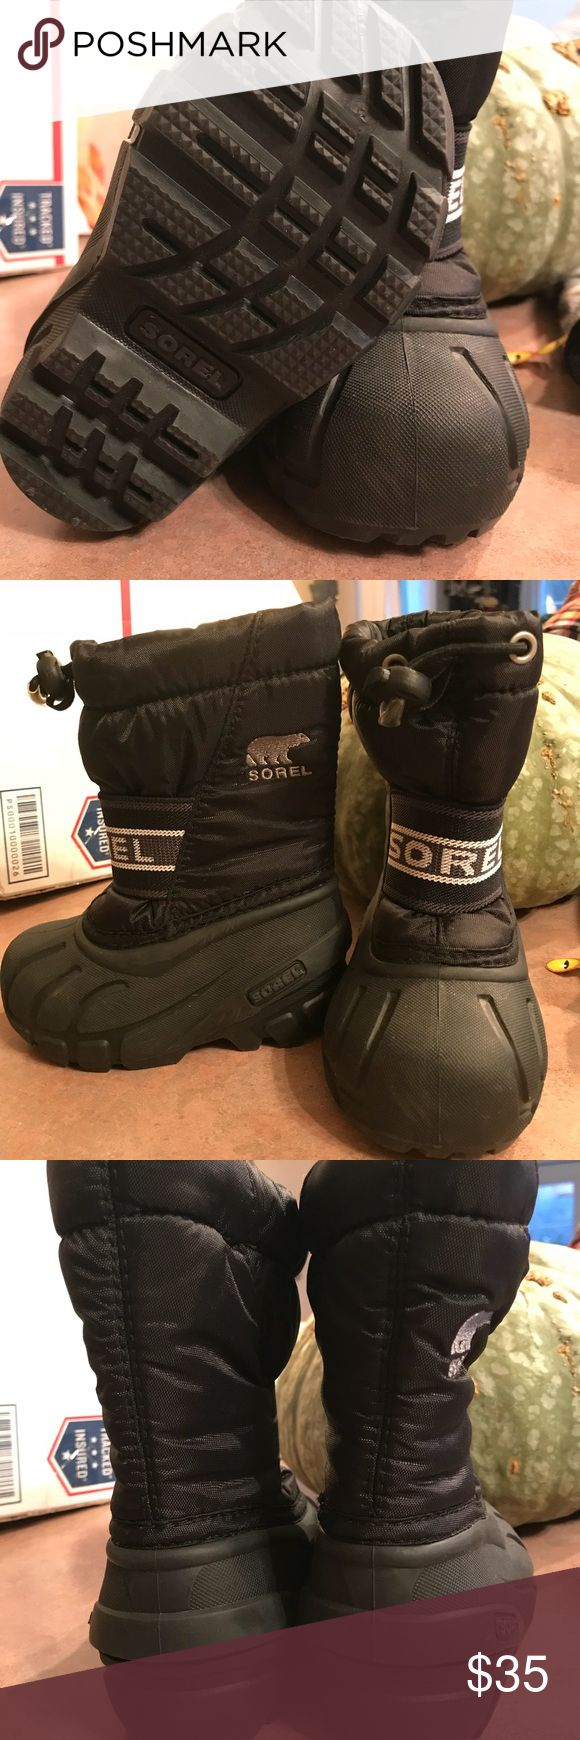 Toddler Sorel snow boots size 6 Like new toddler Sorel snow boots. Bought less than two weeks ago but they are too small. Sorel Shoes Rain & Snow Boots